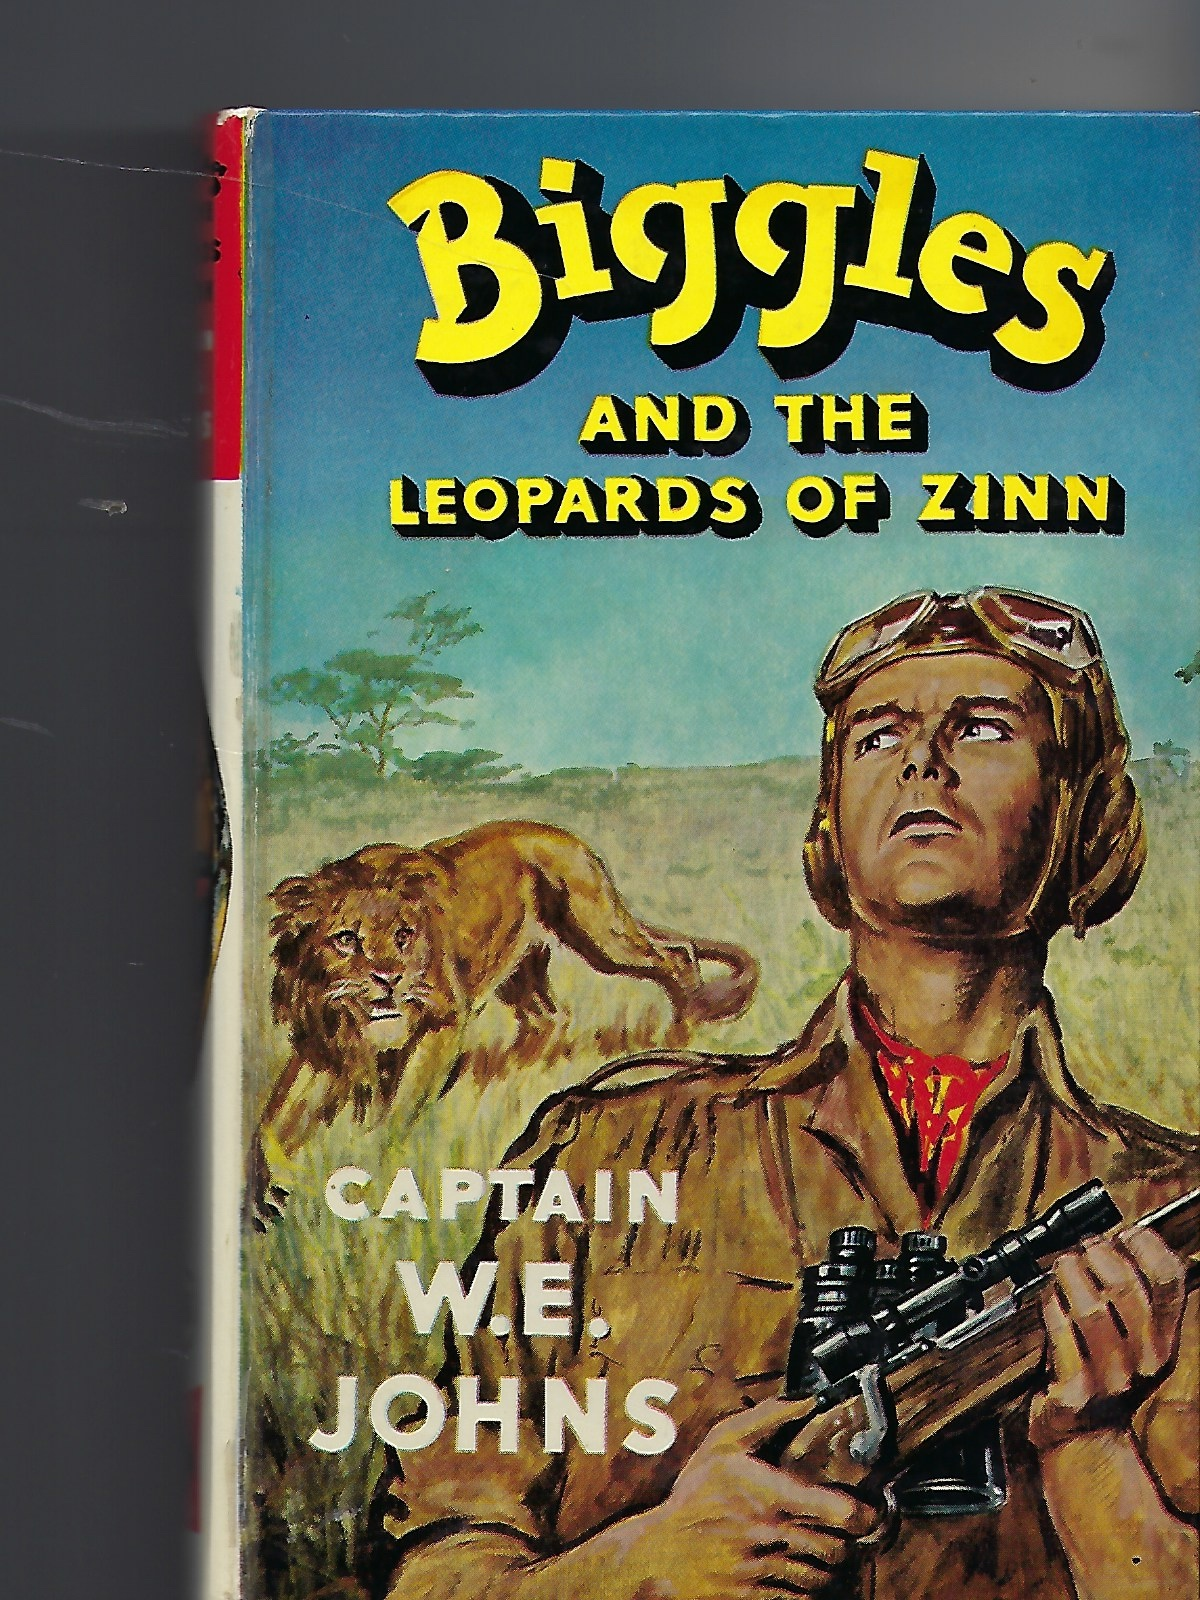 Image for Biggles and the Leopards of Zinn In Central Africa Biggles & Co Free a Primitive Race from Sinister Influences and Expose a Plot